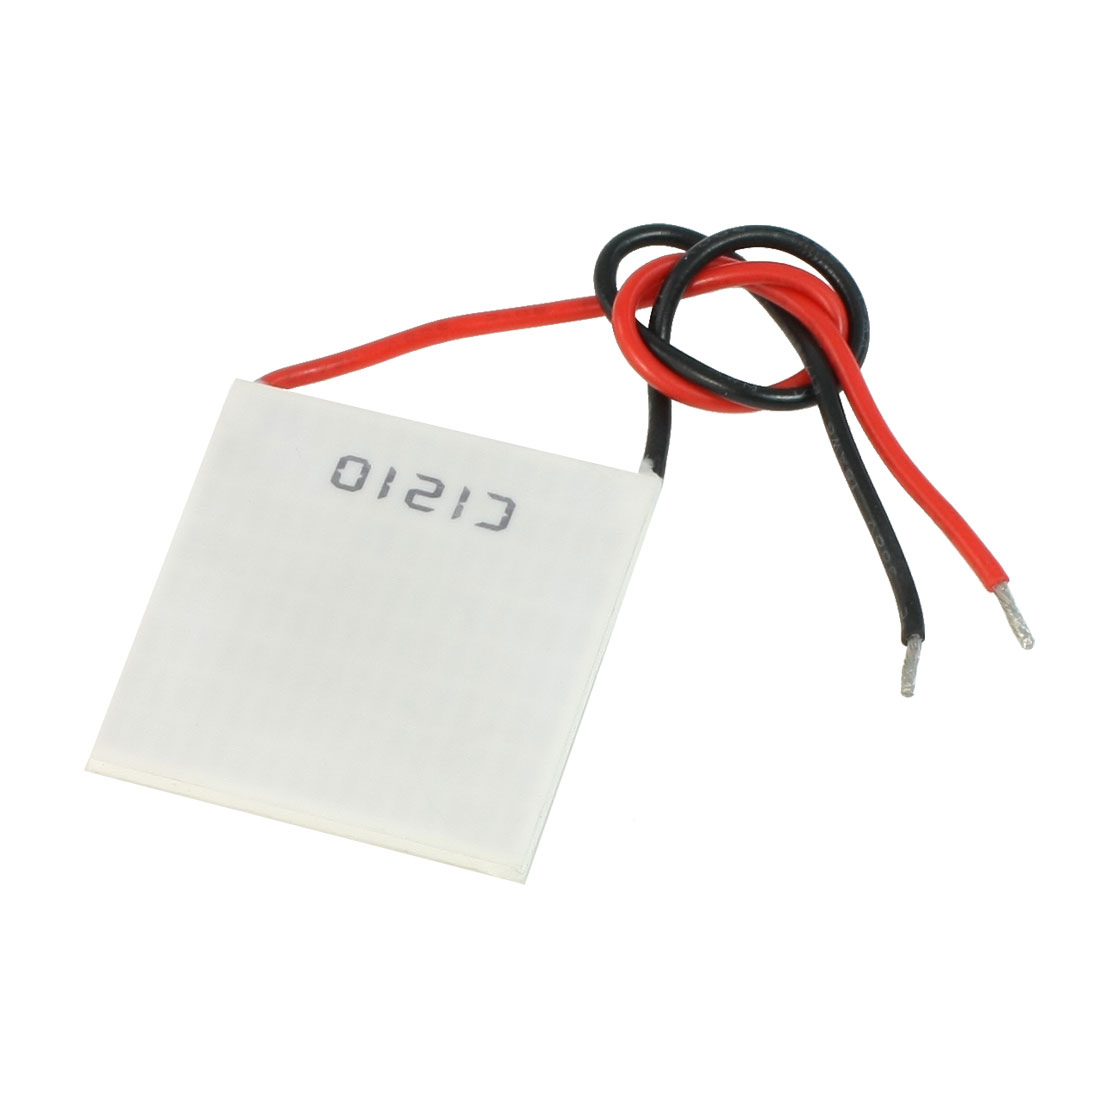 DC 12V 10A 40mmx40mm TEC Thermoelectric Cooler Module Cooling Peltier Plate